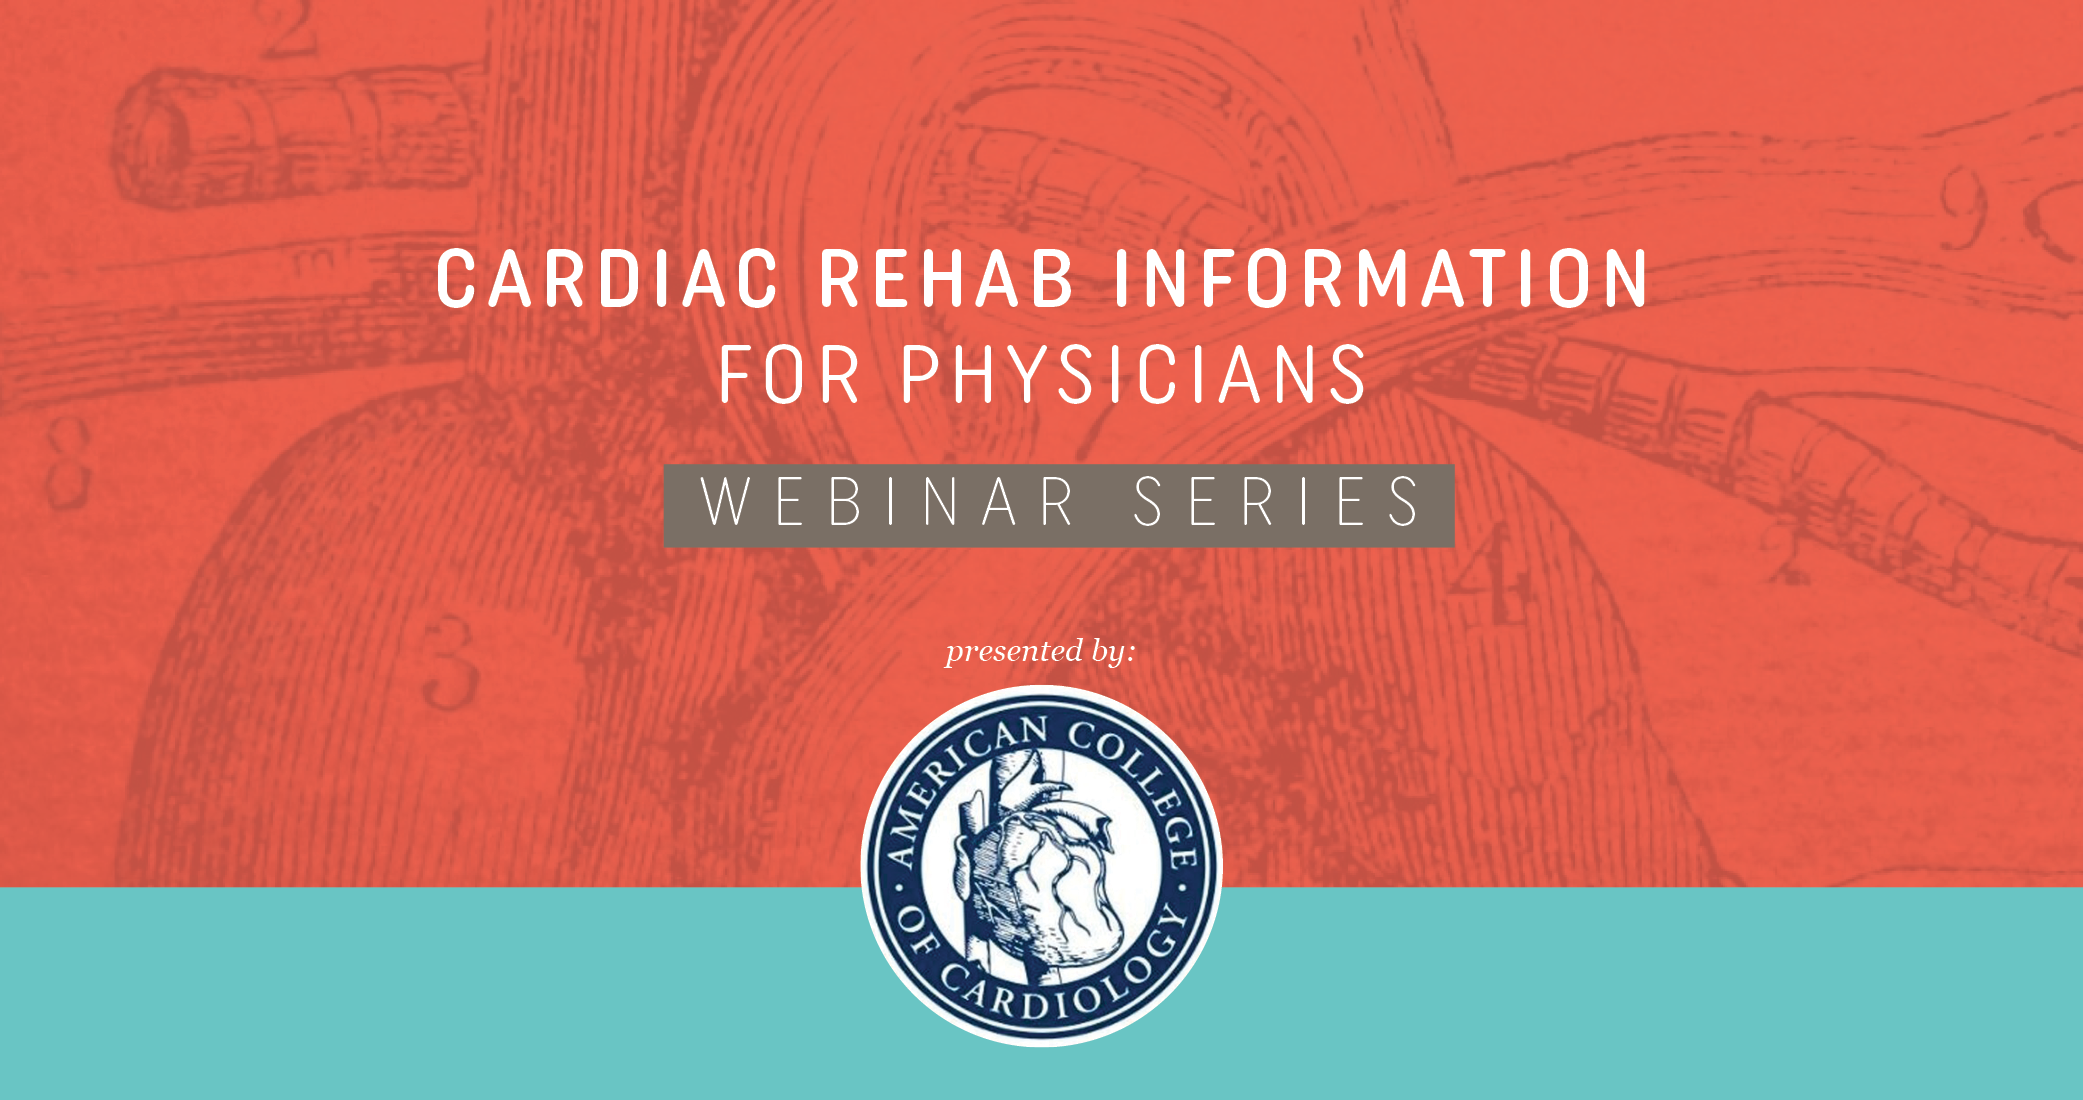 Cardiac Rehab Information for Physicians (ACC webinars)